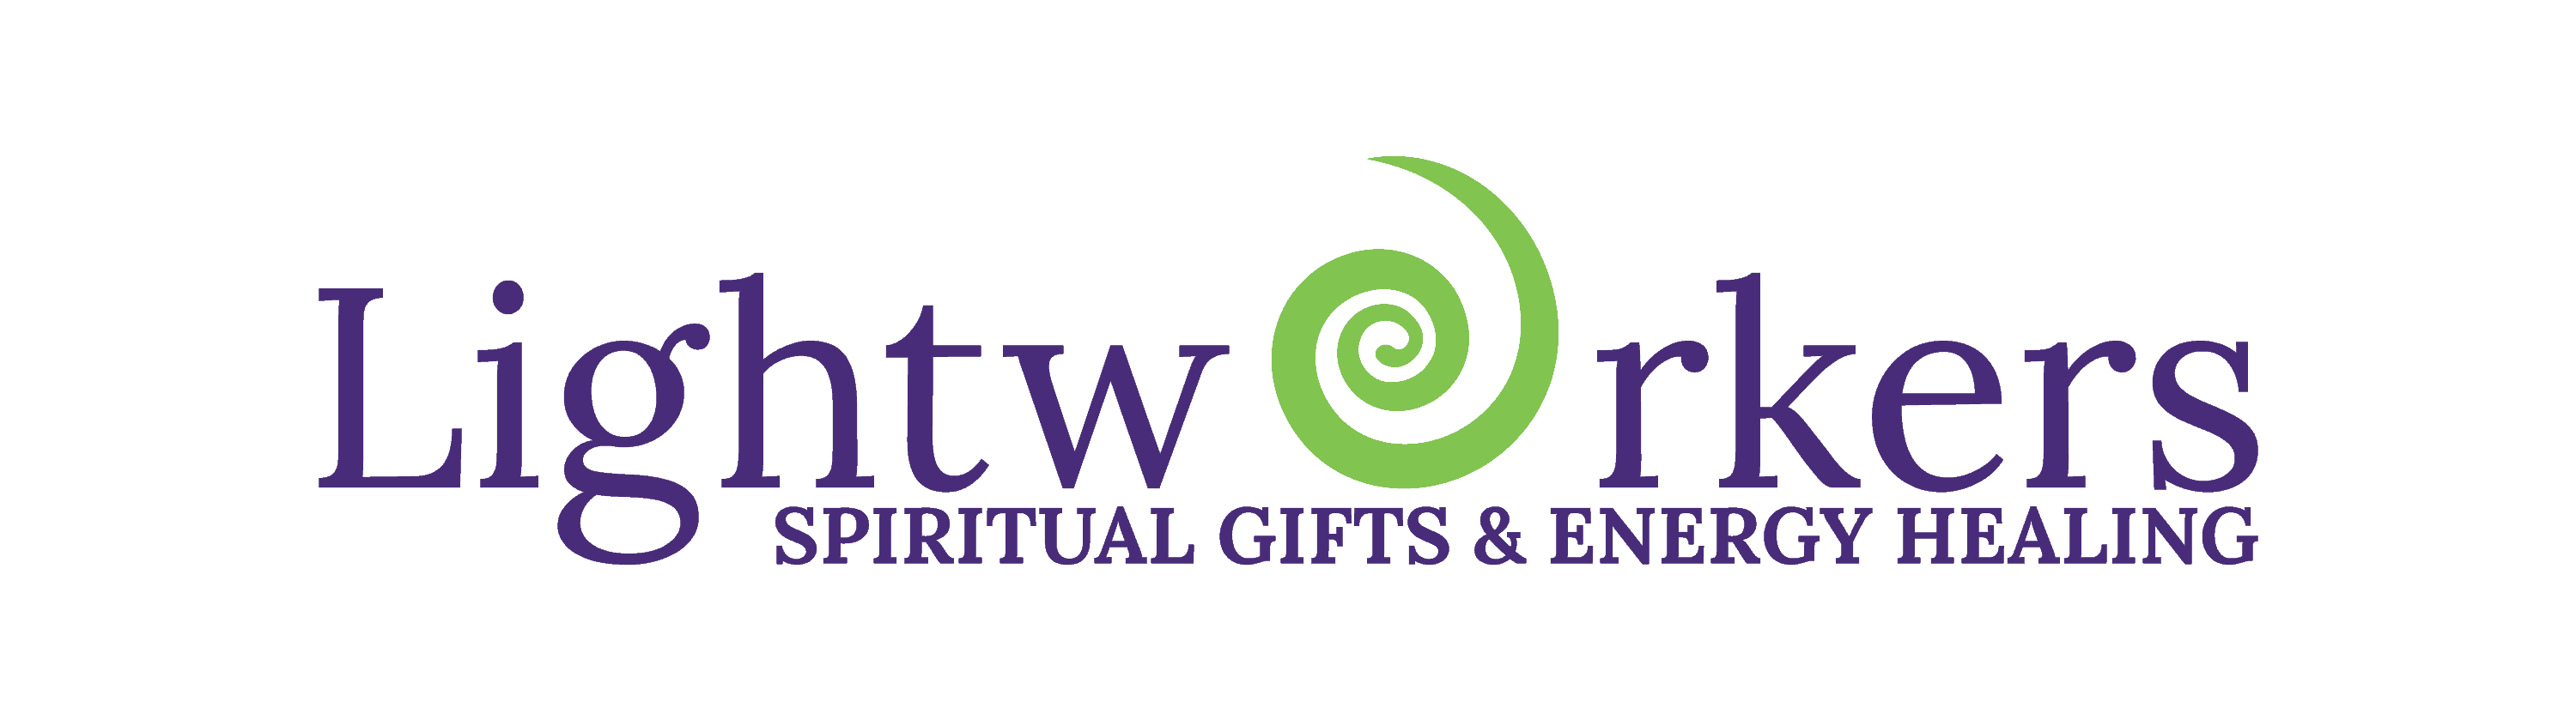 Lightworkersgifts new logo